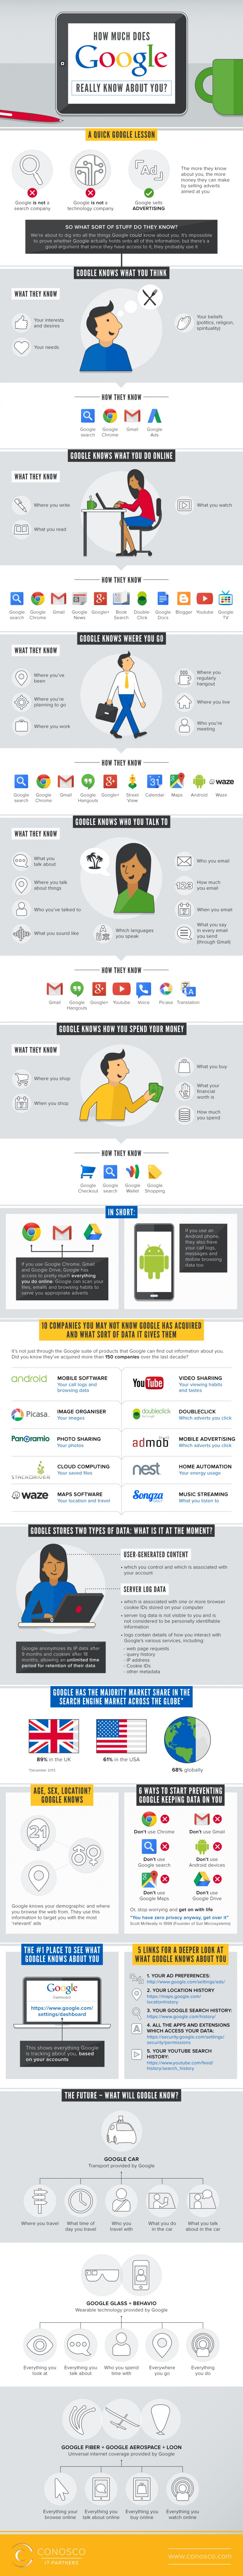 Infographie 199 - What Google knows about you